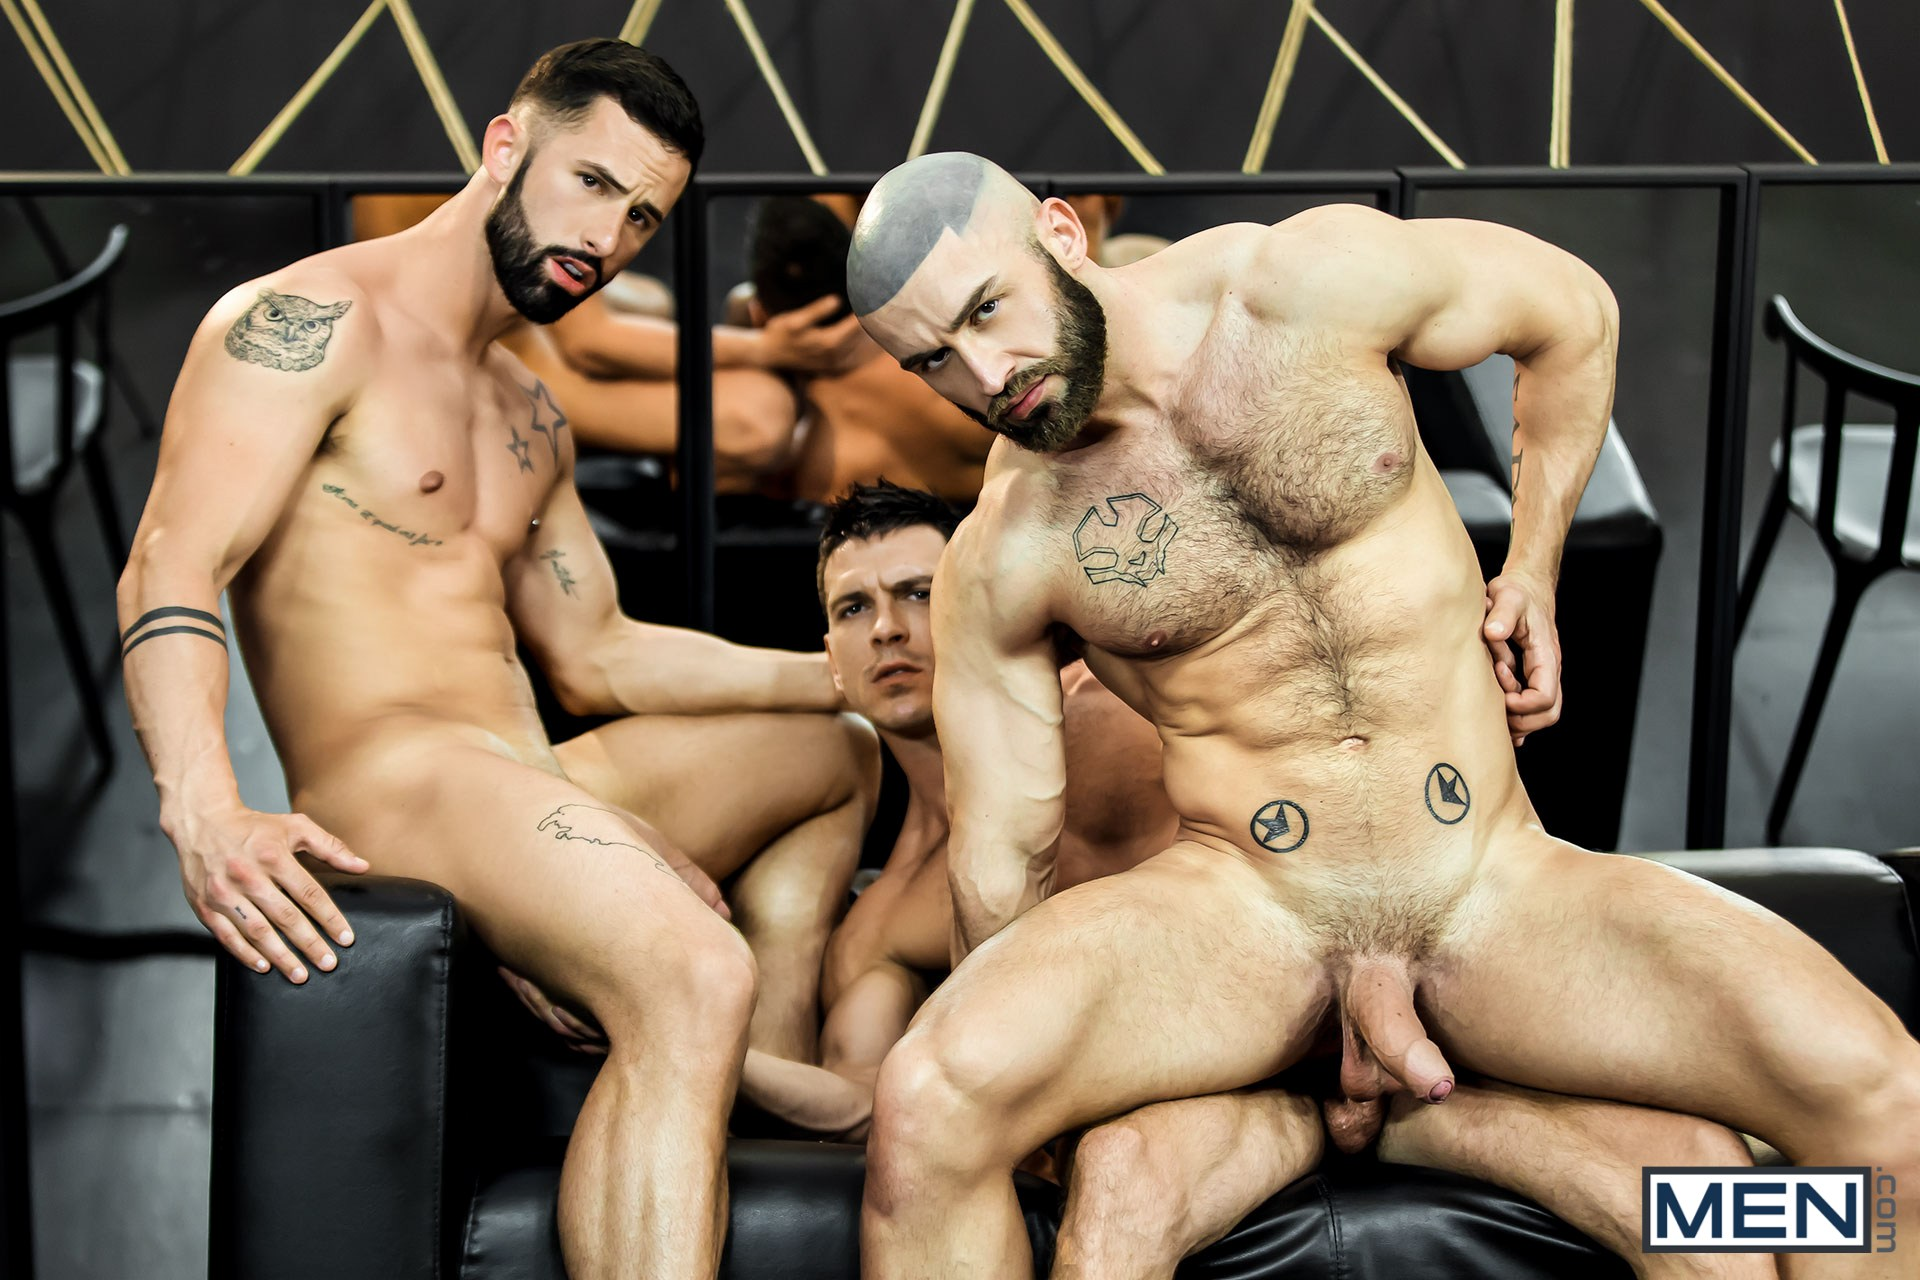 Gay porn star gets fucked Gay Porn Star Francois Sagat Fucks And Gets Fucked In Way With Paddy Xxxpicz